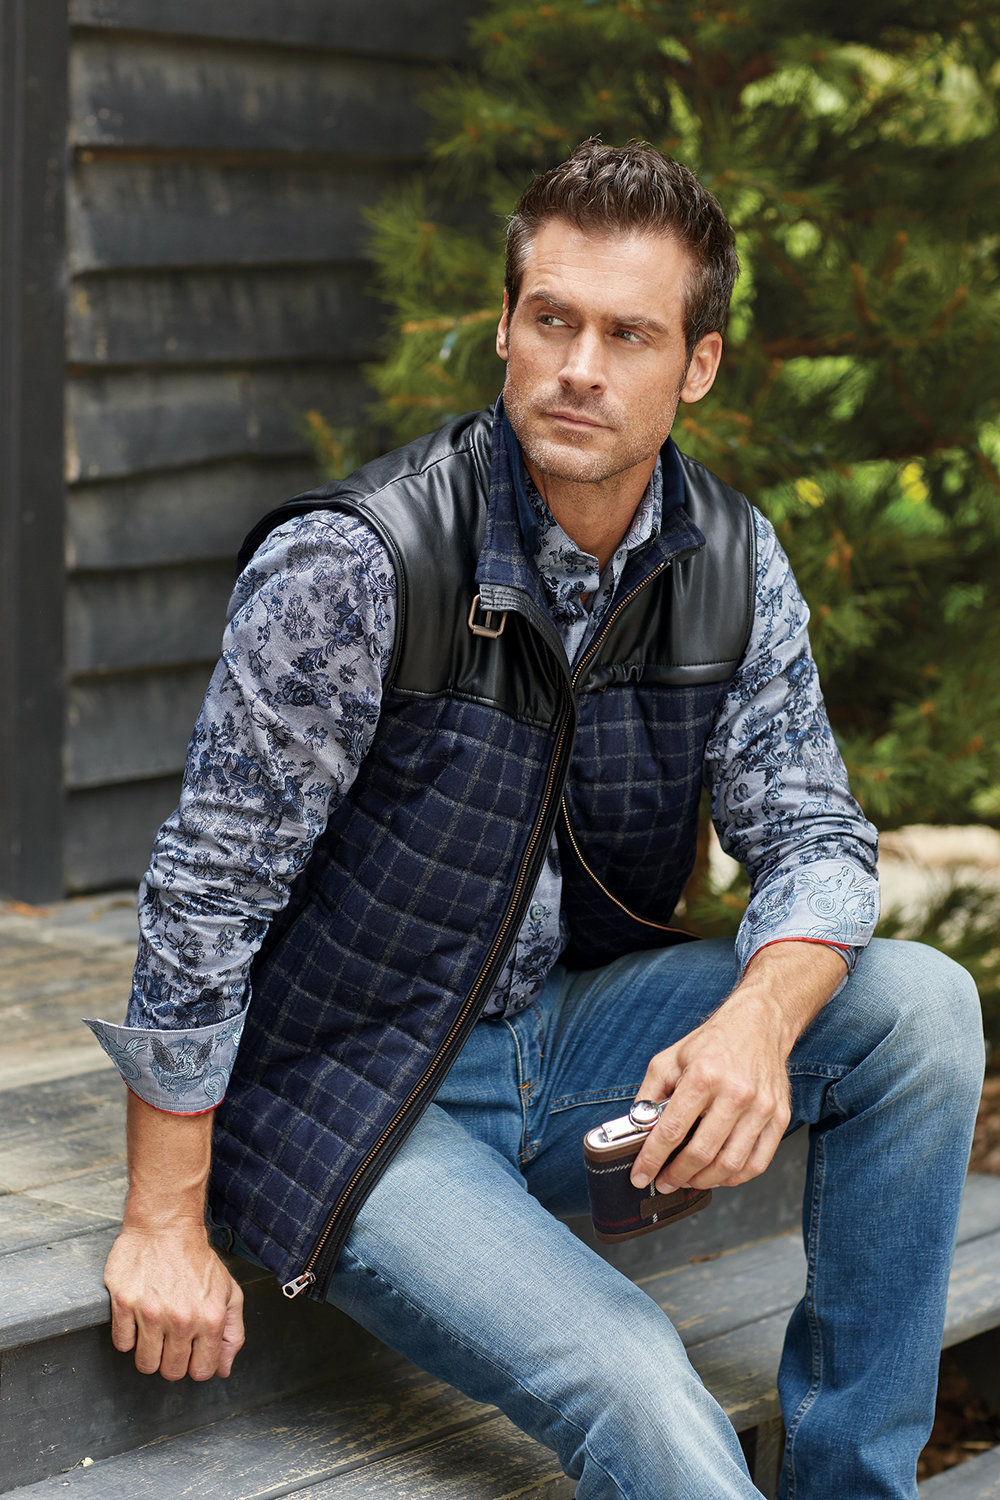 MCCLEMENT WINDOWPANE VEST BY ROBERT GRAHAM $498  BARKER FLORAL LONG SLEEVE SPORT SHIRT BY ROBERT GRAHAM $278  AUSTEN JEANS BY ROBERT GRAHAM $188  TARTON HIP AND CUPS BY BARBOUR $119   www.patrickjames.com